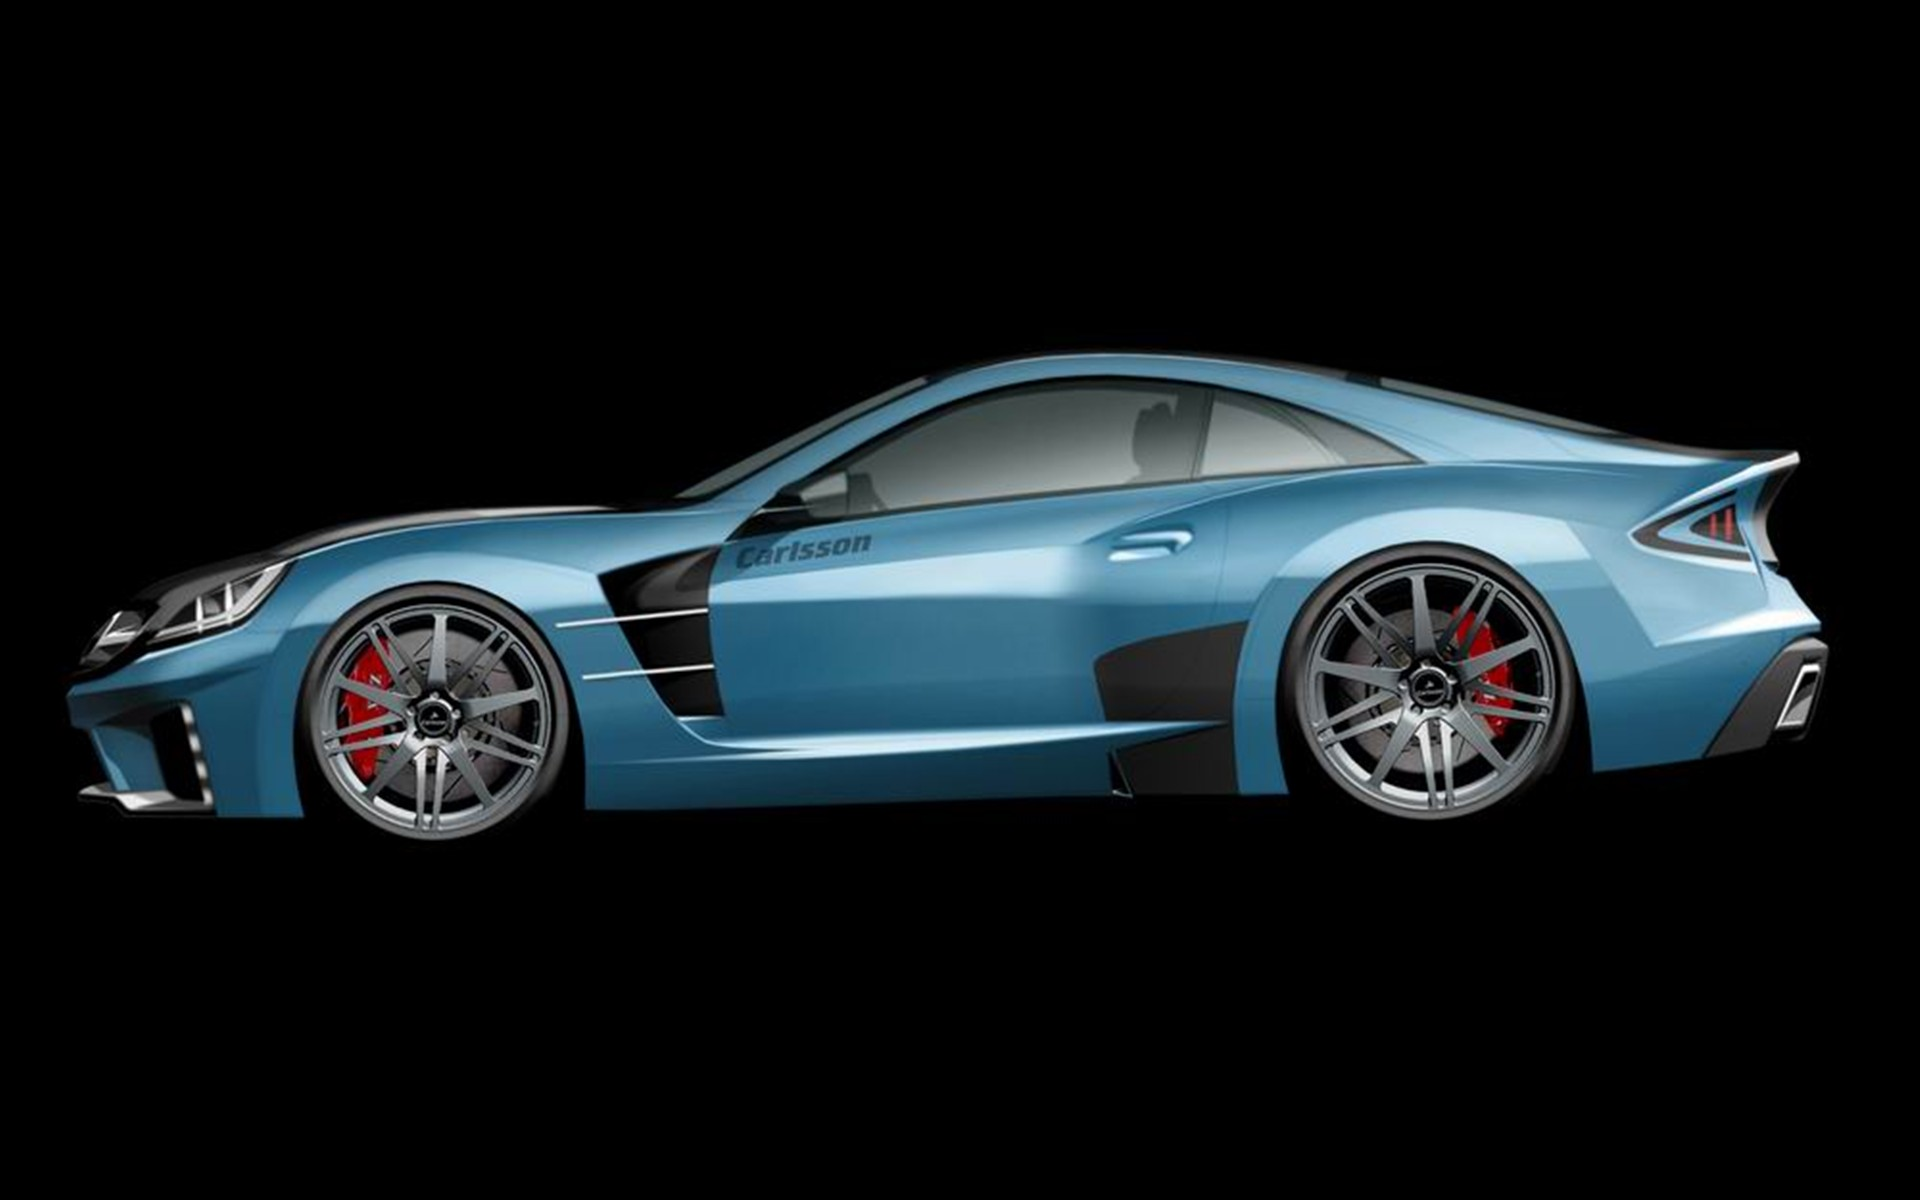 Carlsson C25 Blue Car Wallpapers HD Wallpapers 1920x1200